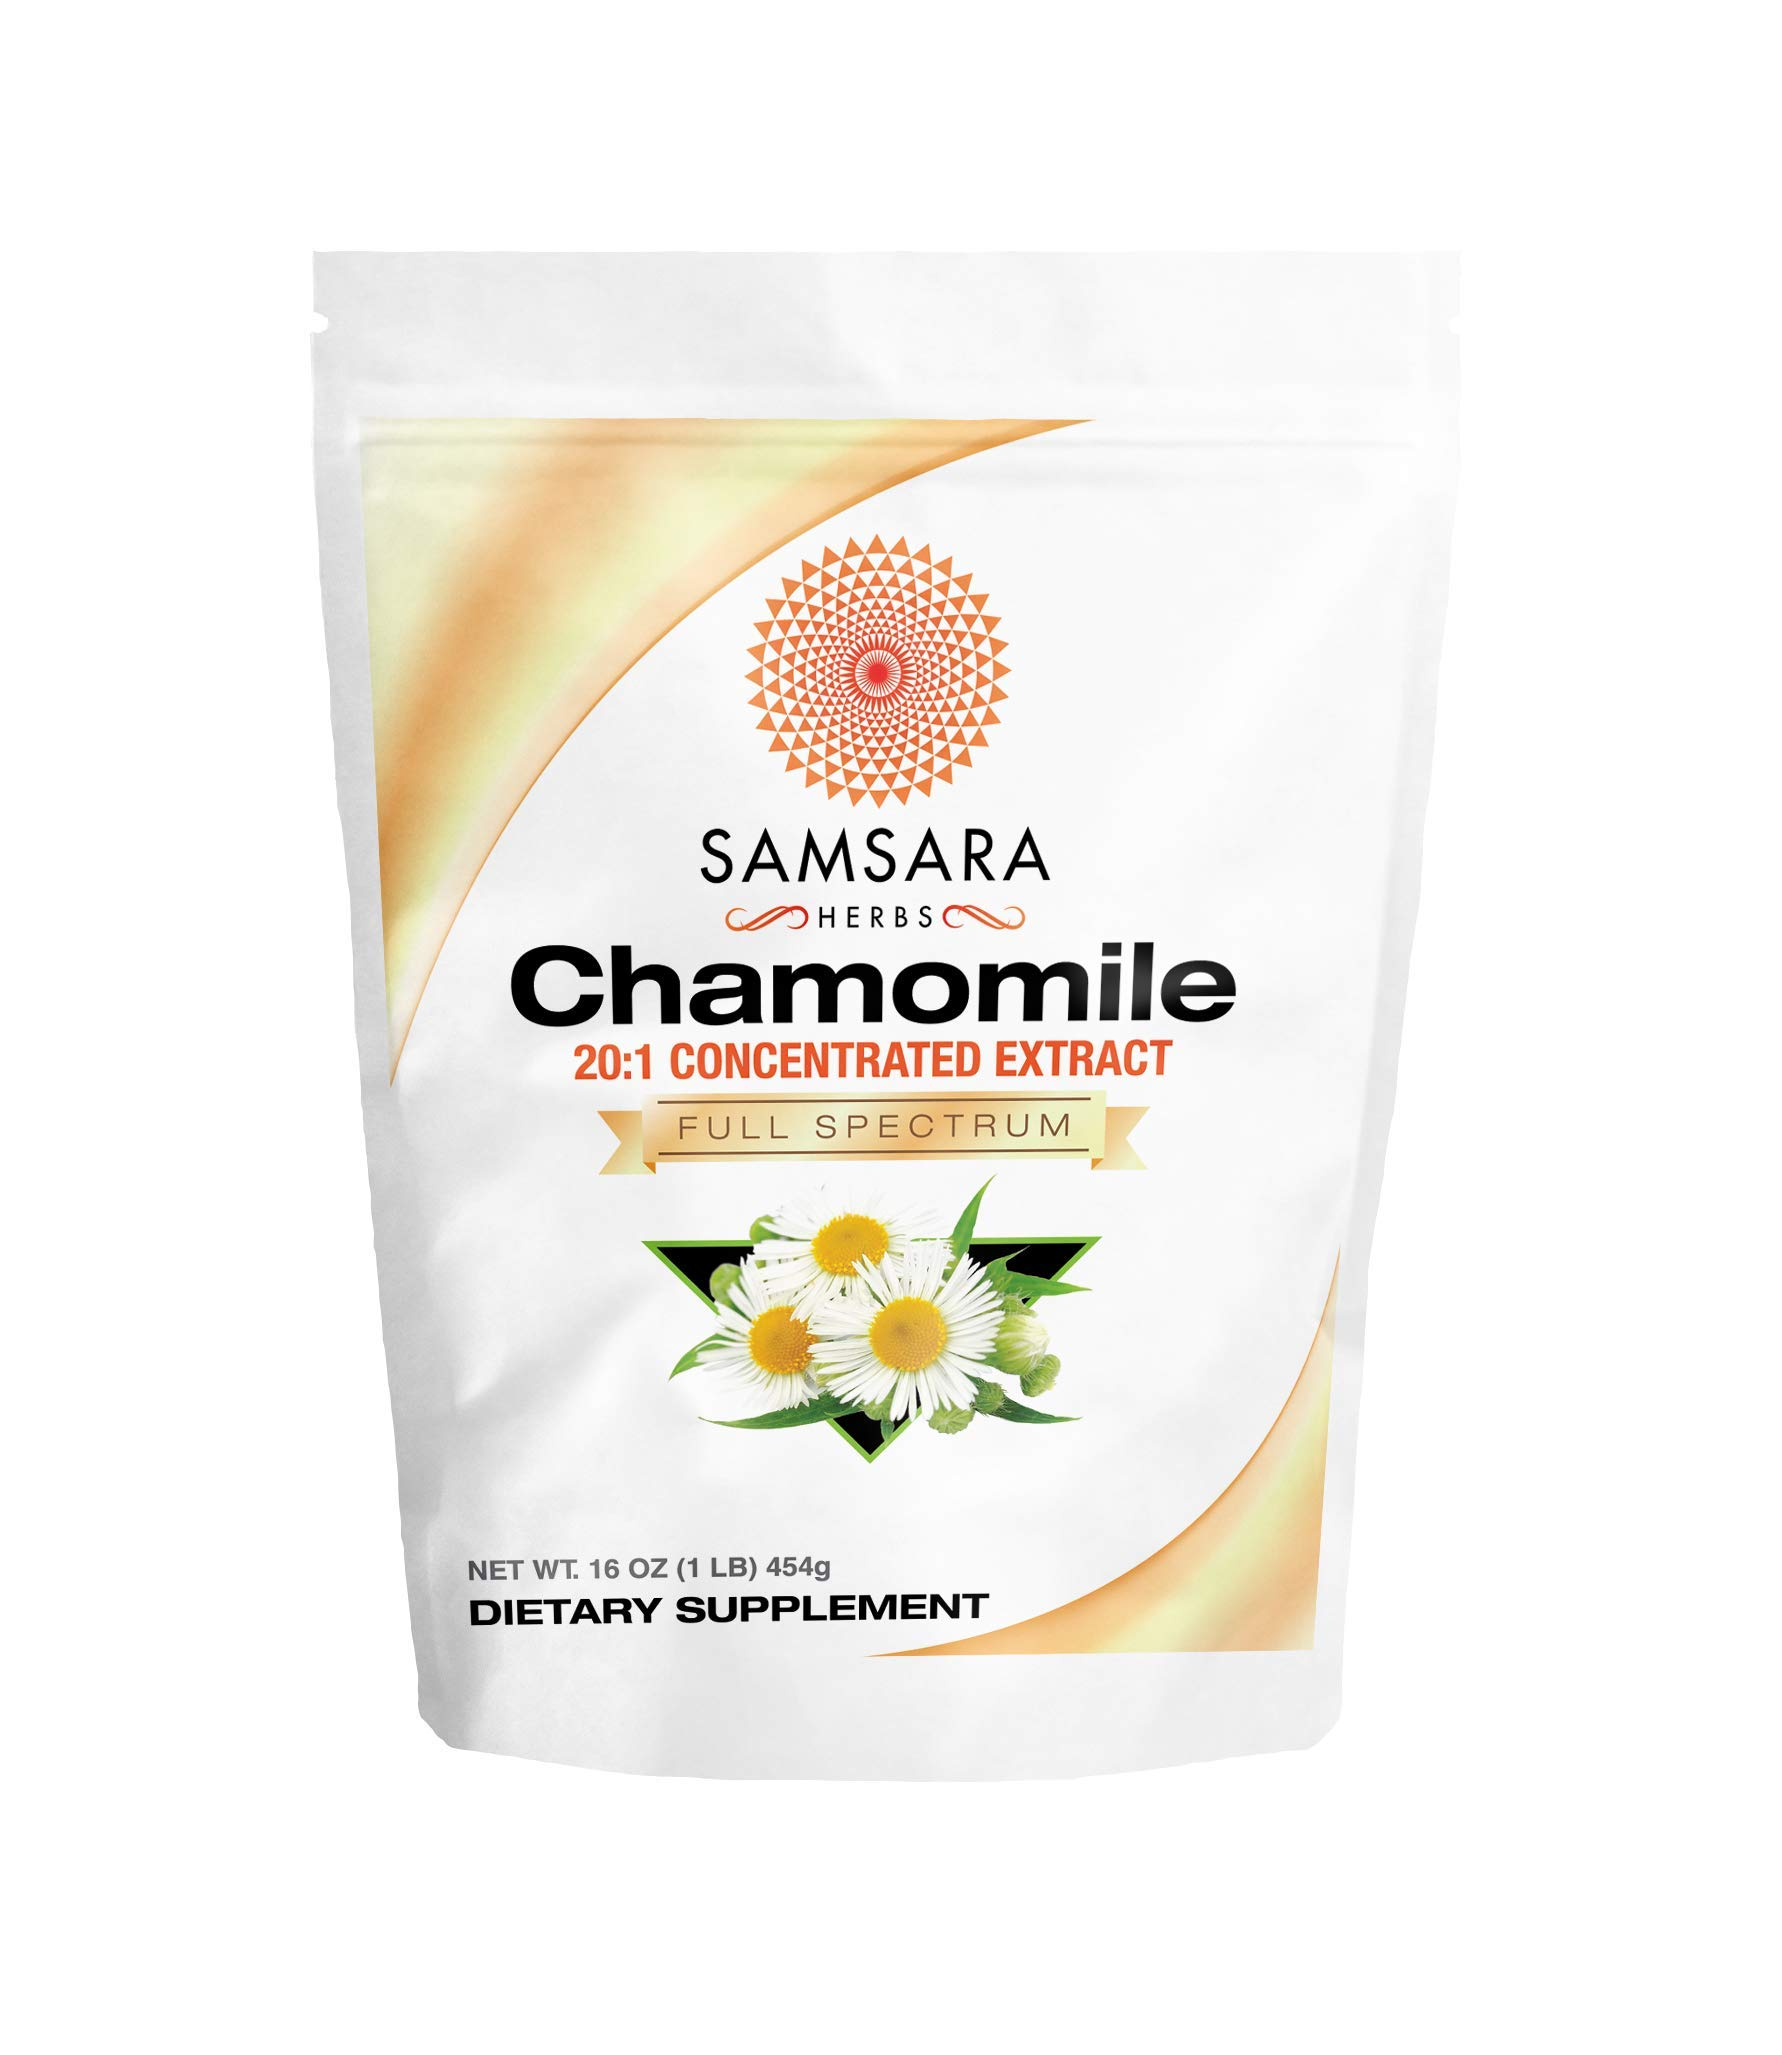 Samsara Herbs Chamomile Extract Powder (20:1 Concentrated Extract) (16oz)